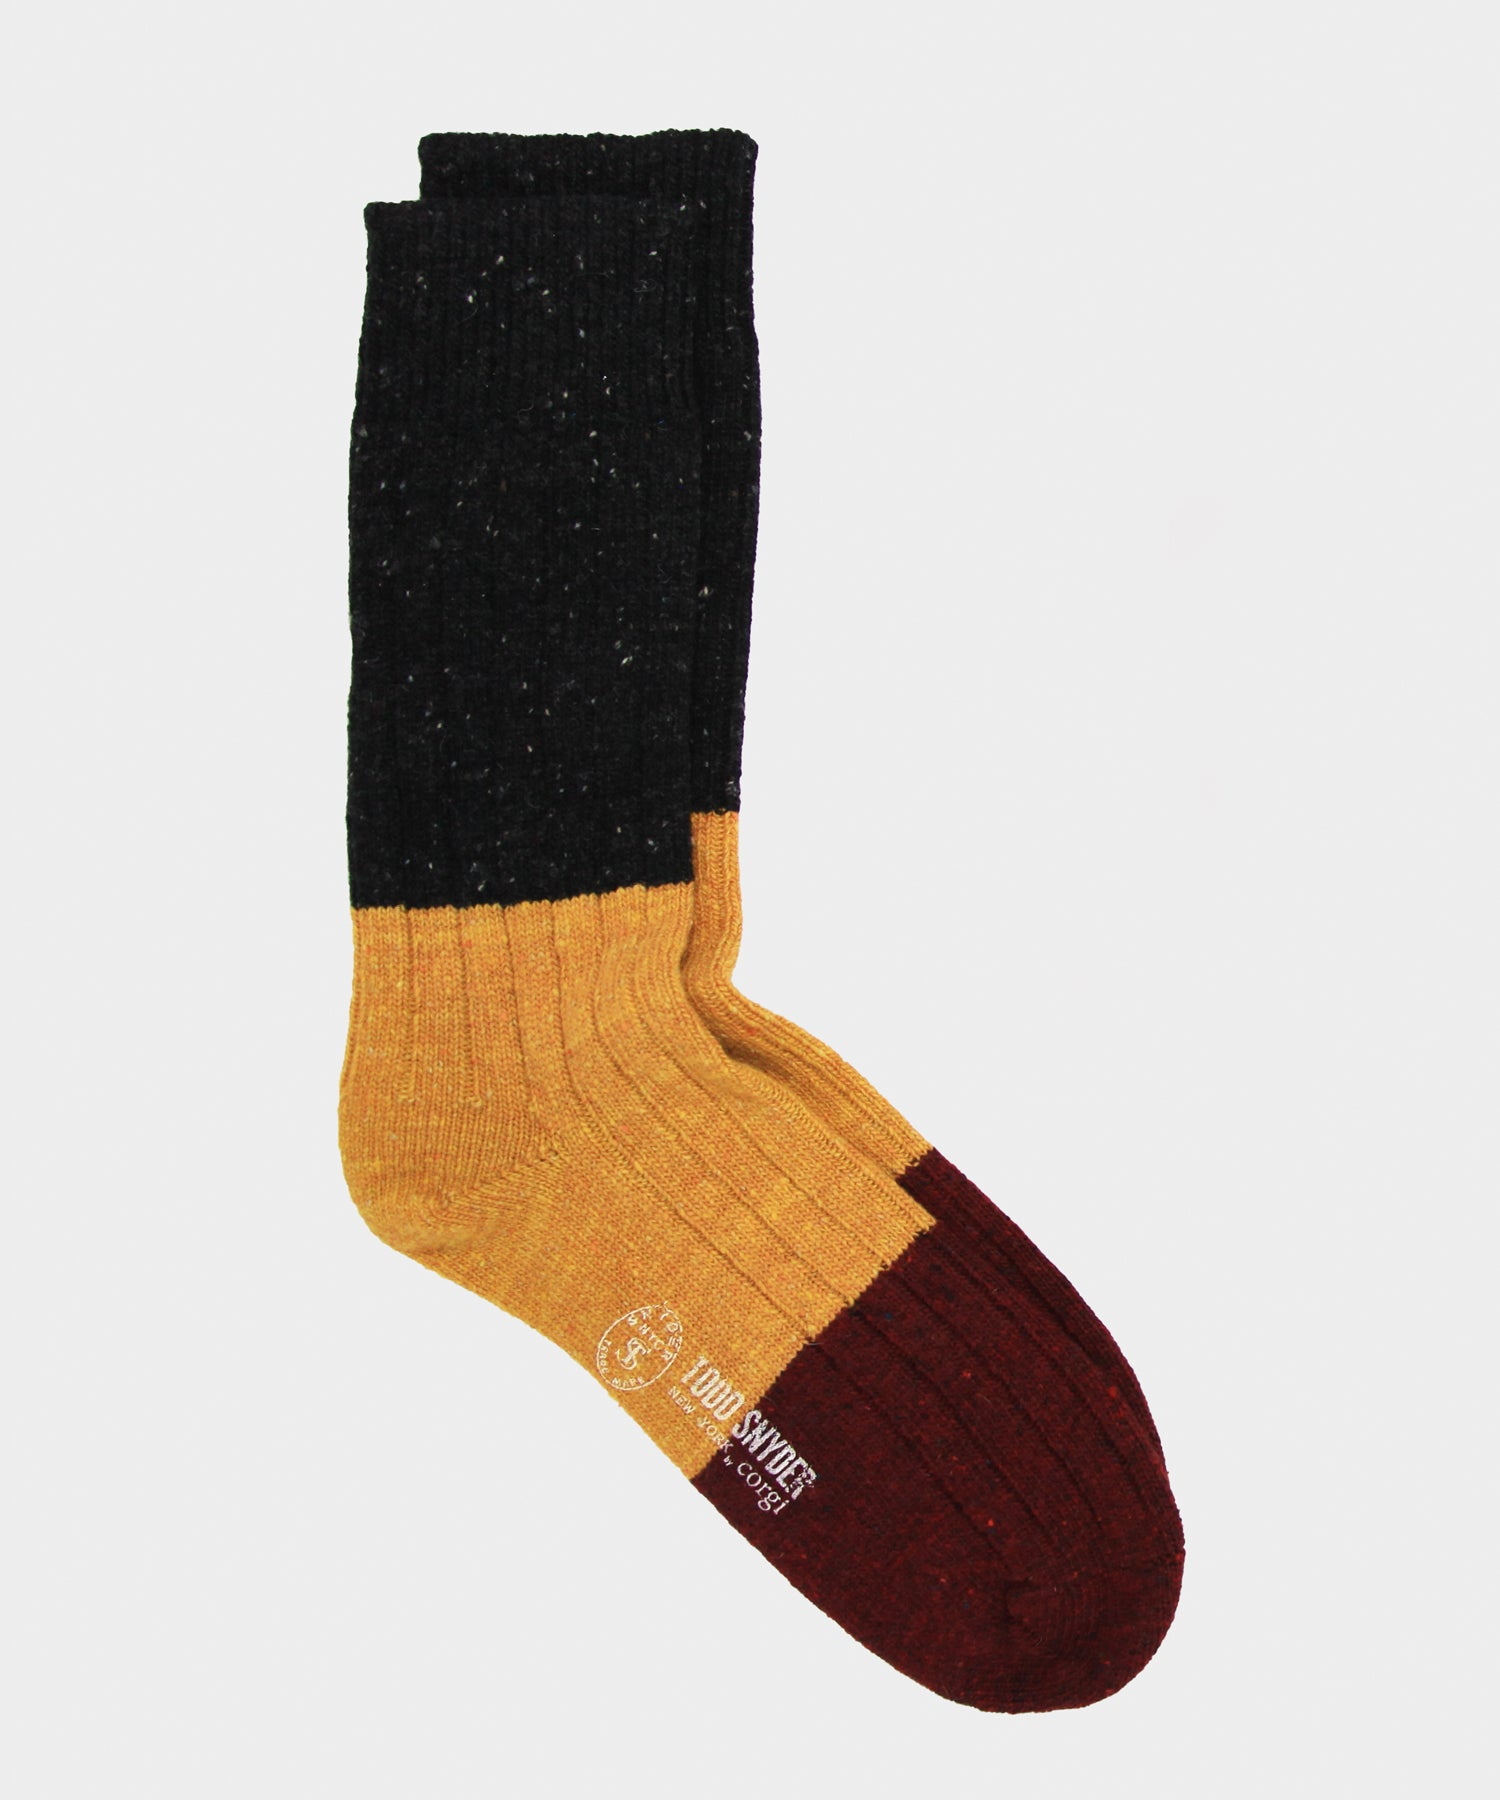 Corgi Tri Color Irish Donegal Wool Socks in Spice